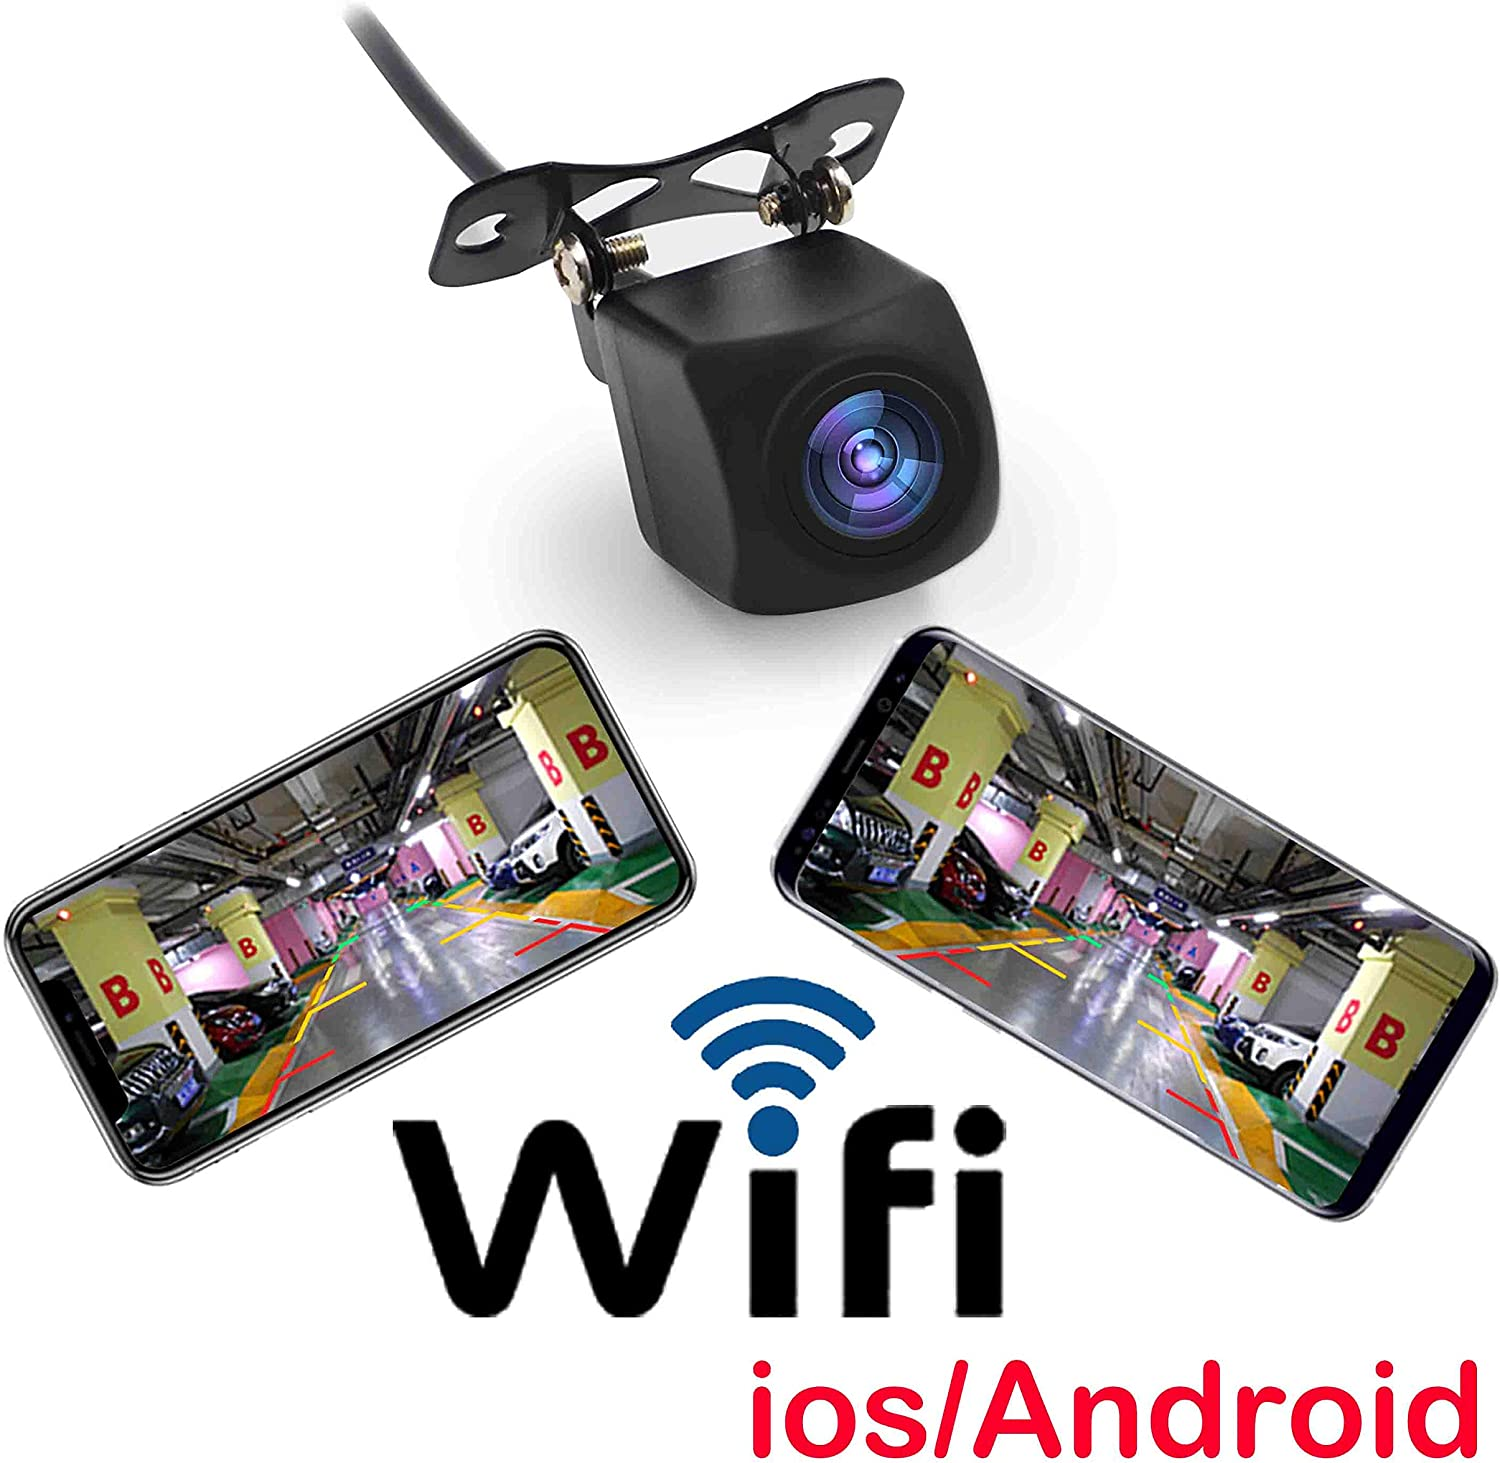 2nd Generation Fumei HD 720p WiFi Camera Wireless Backup Camera for Car with Smart APP Intelligent Video Recording//Sharing Forward-Looking Camera Compatible with Android and iPhone//iPad